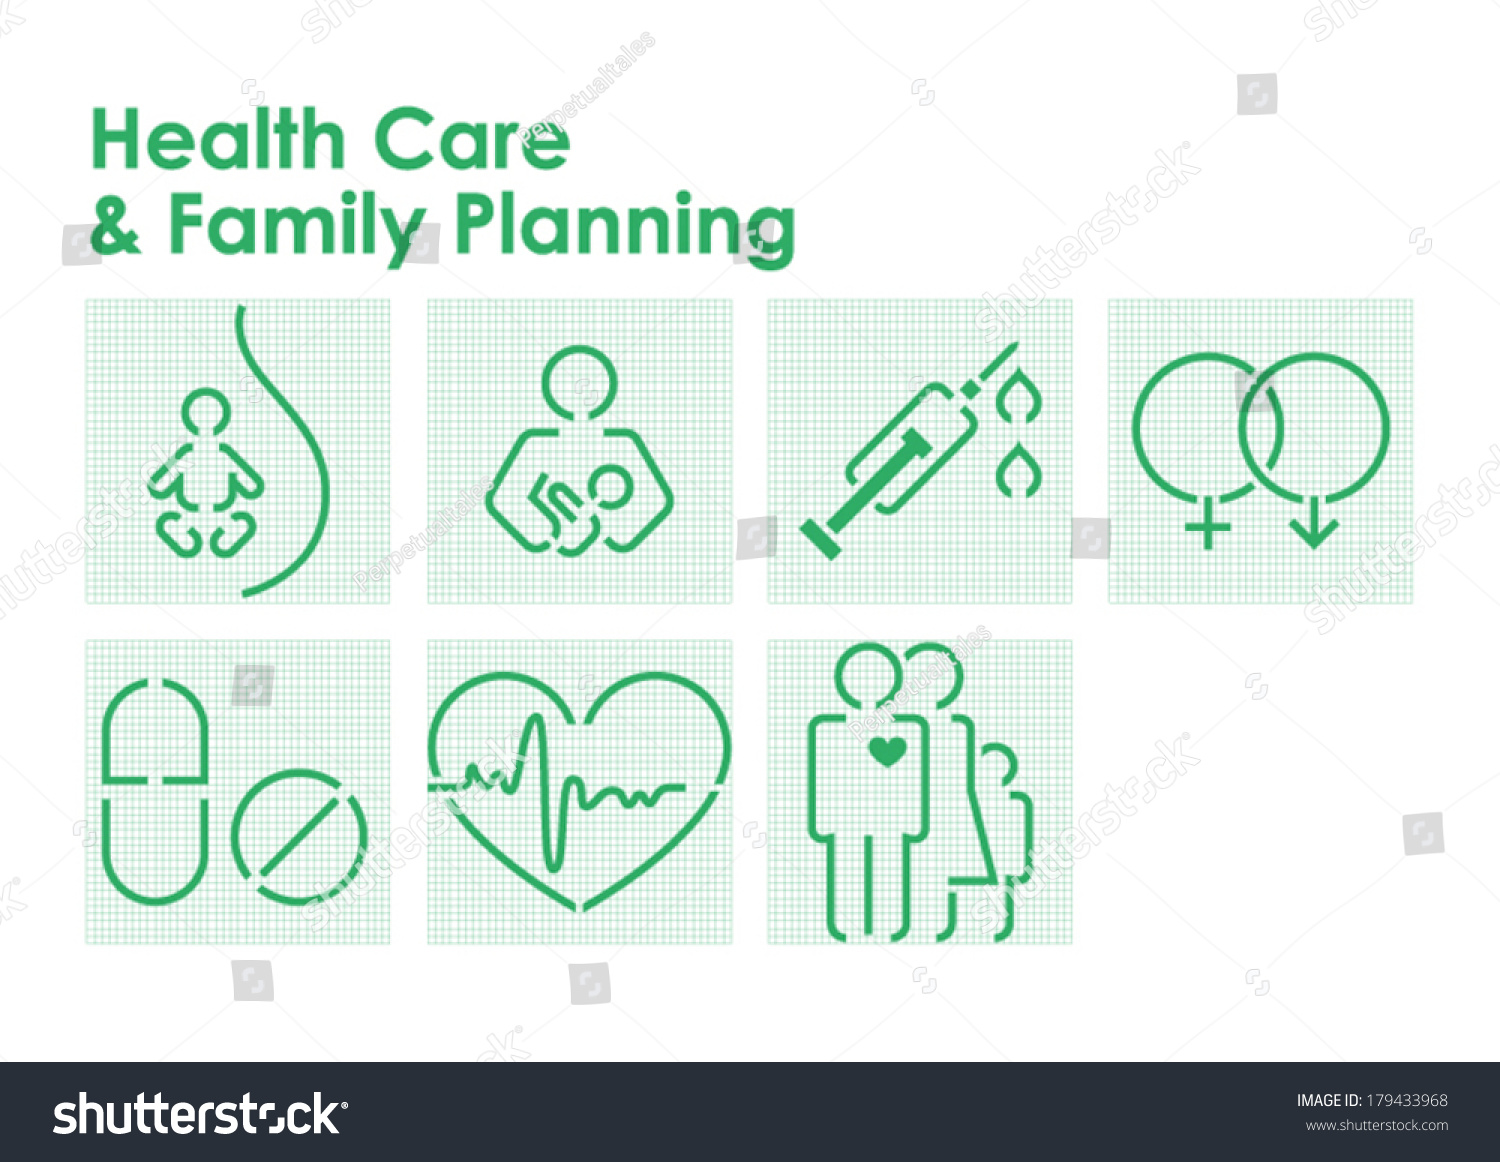 Health Care Family Planning Symbols Stock Vector 2018 179433968